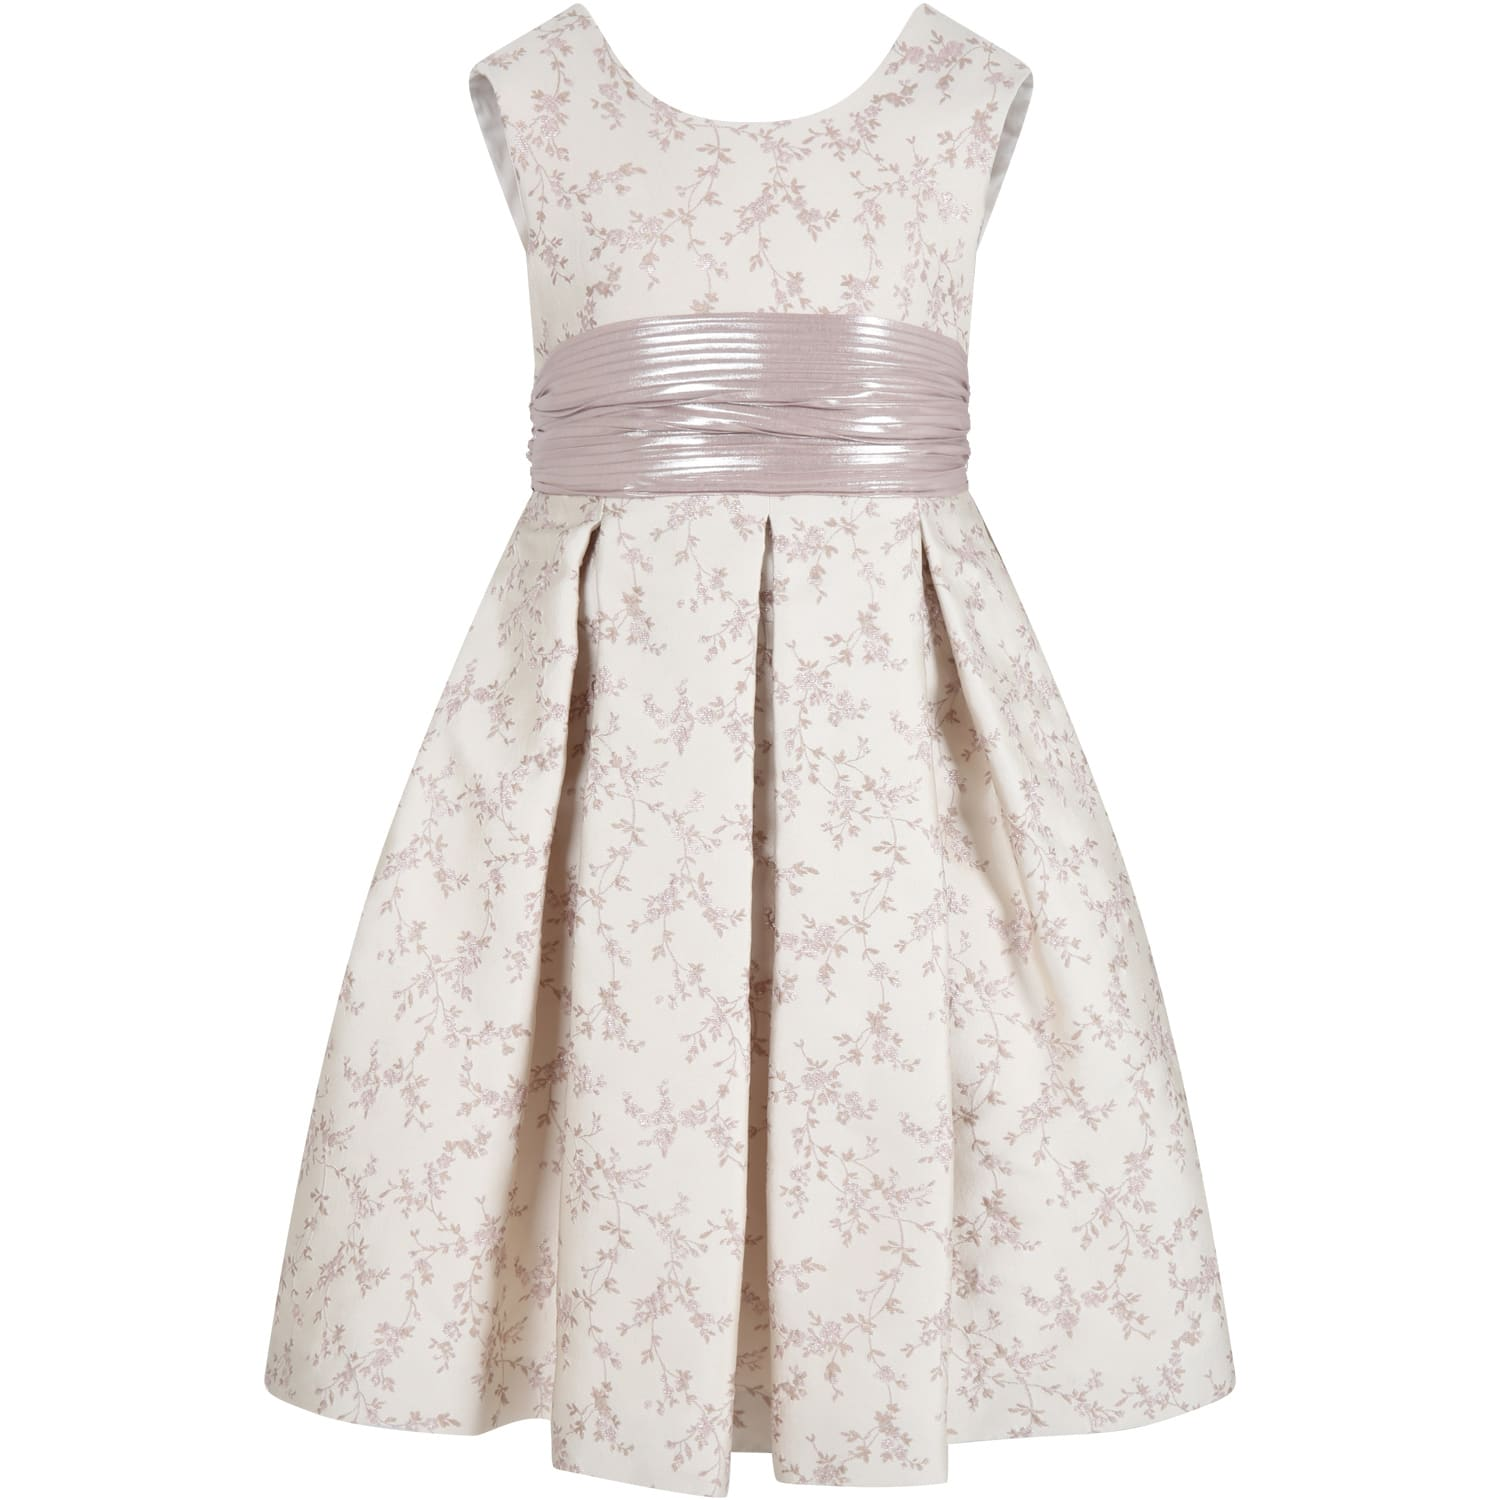 Beige Dress For Girl With Flowers